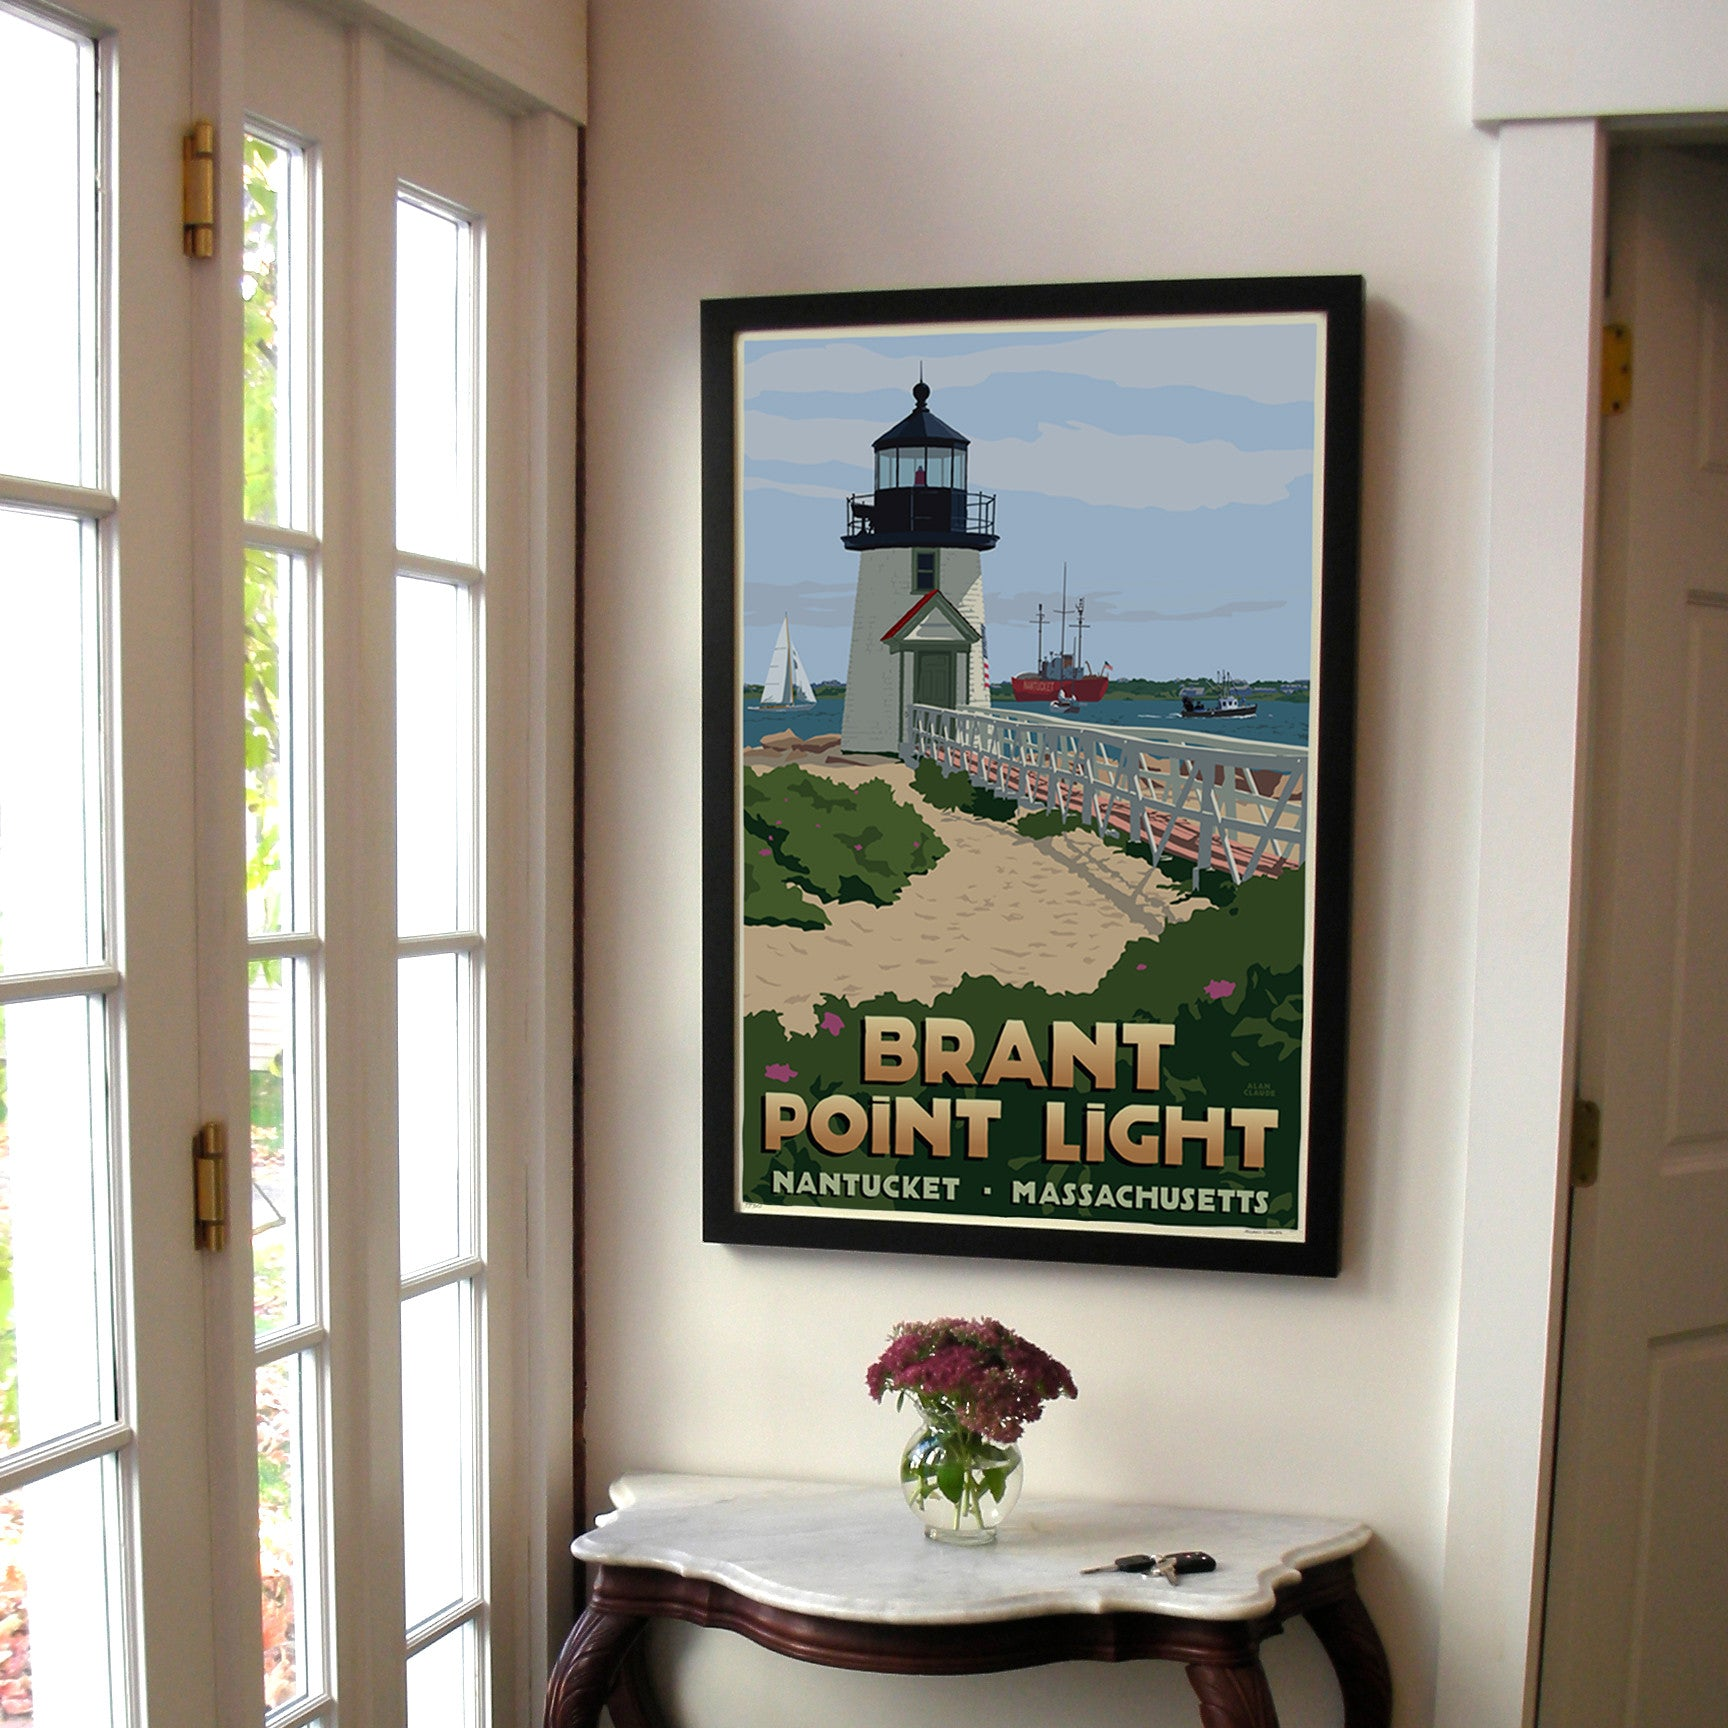 "Brant Point Light Art Print 24"" x 36"" Framed Travel Poster - Massachusetts"